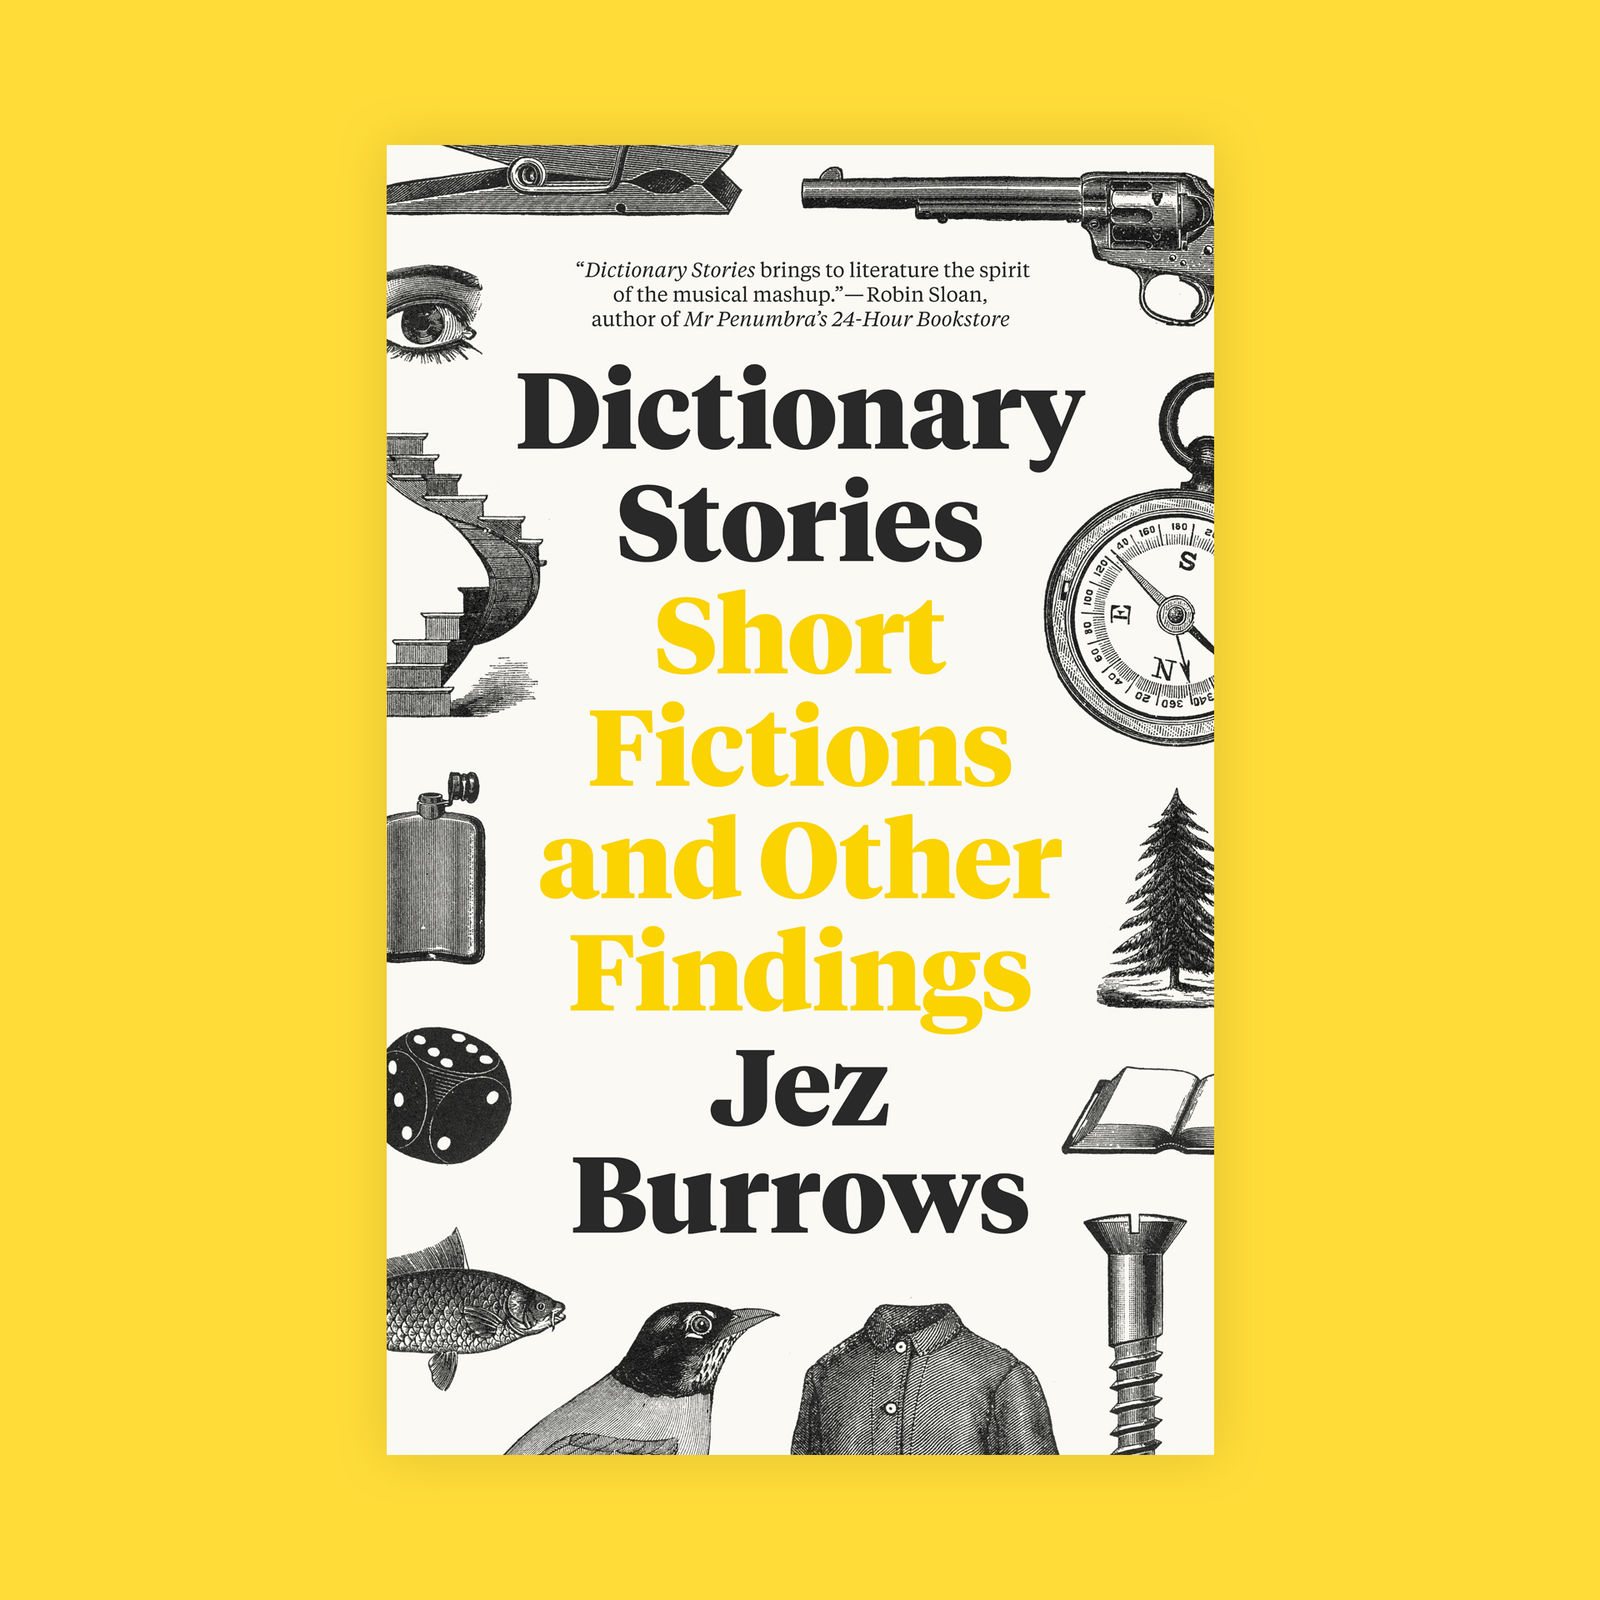 Introducing: Dictionary Stories